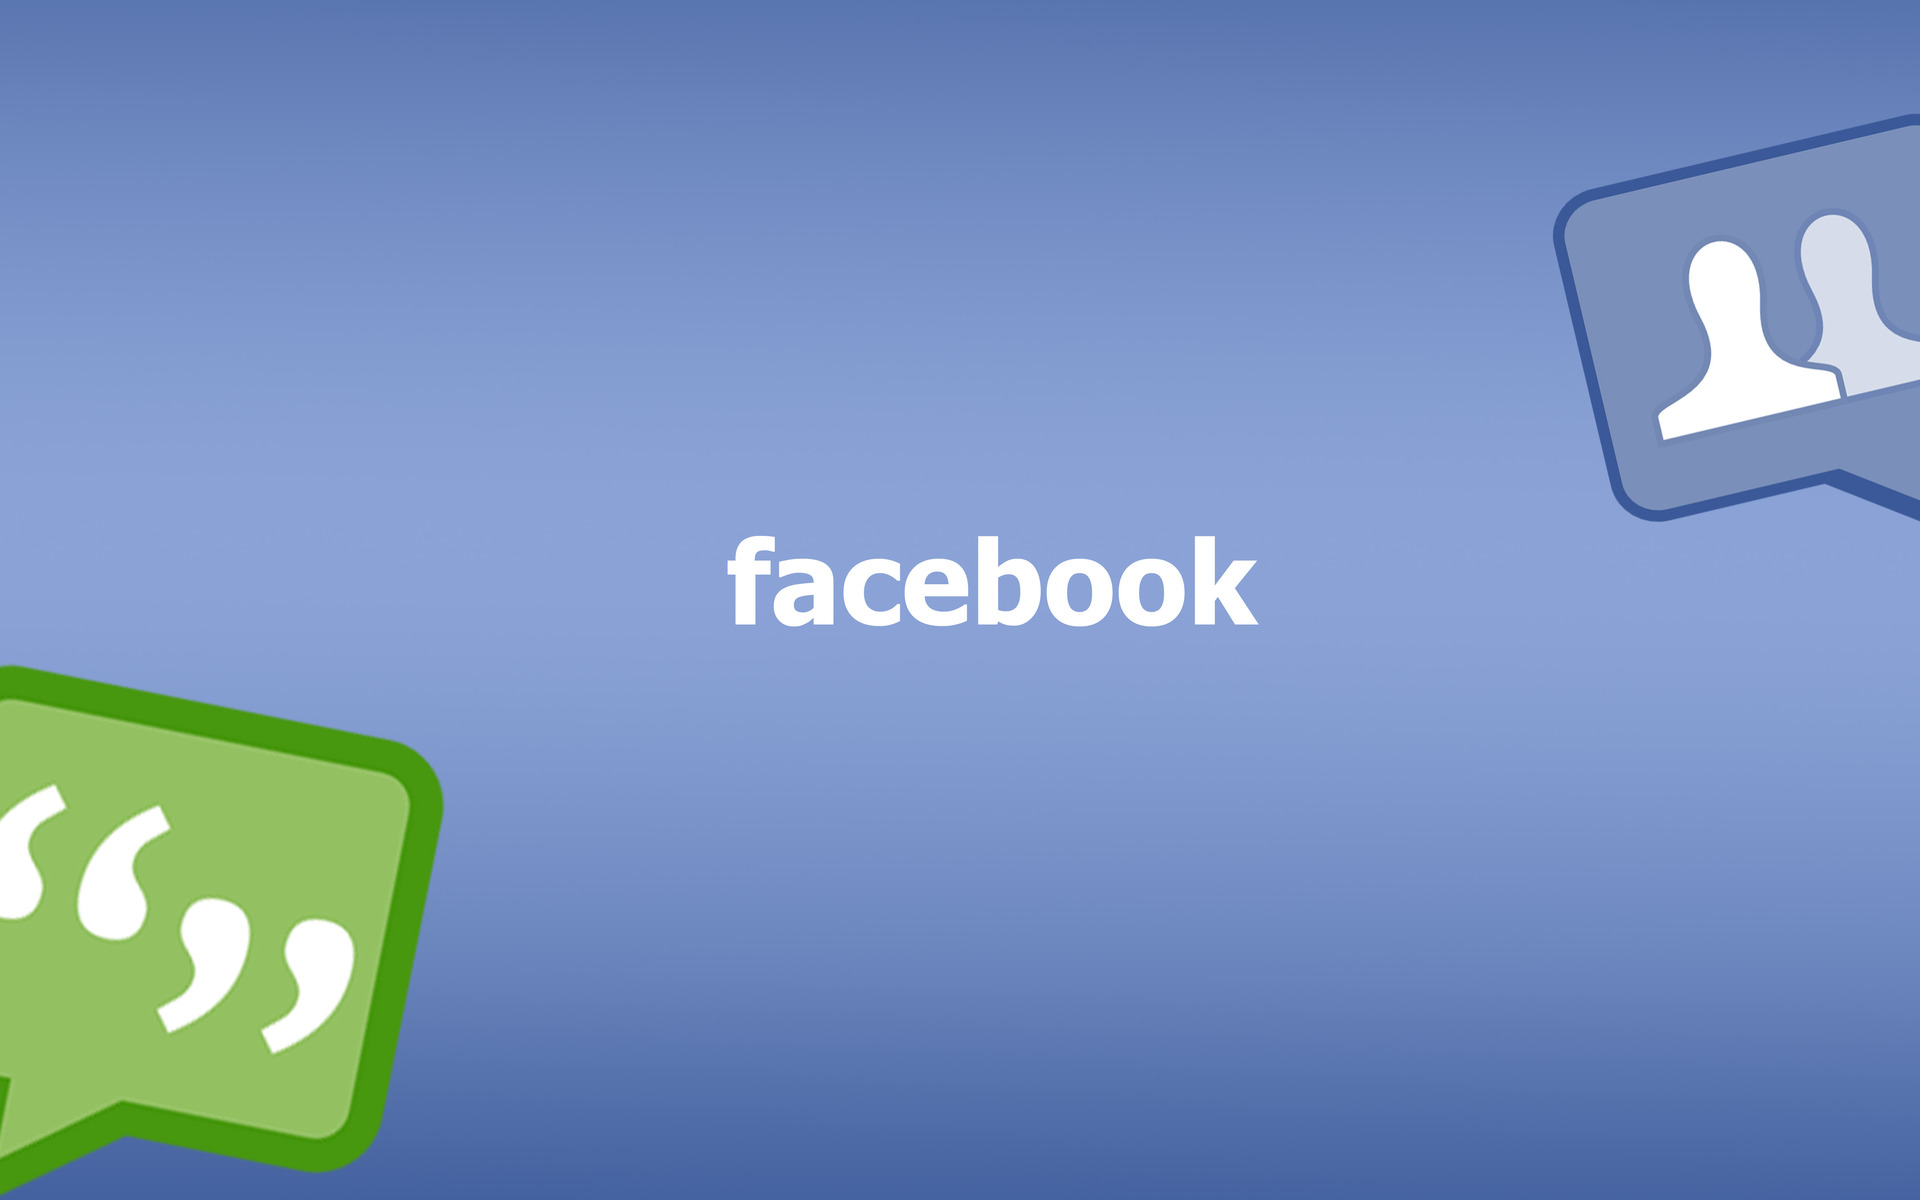 Facebook Wallpapers Backgrounds Hd 13